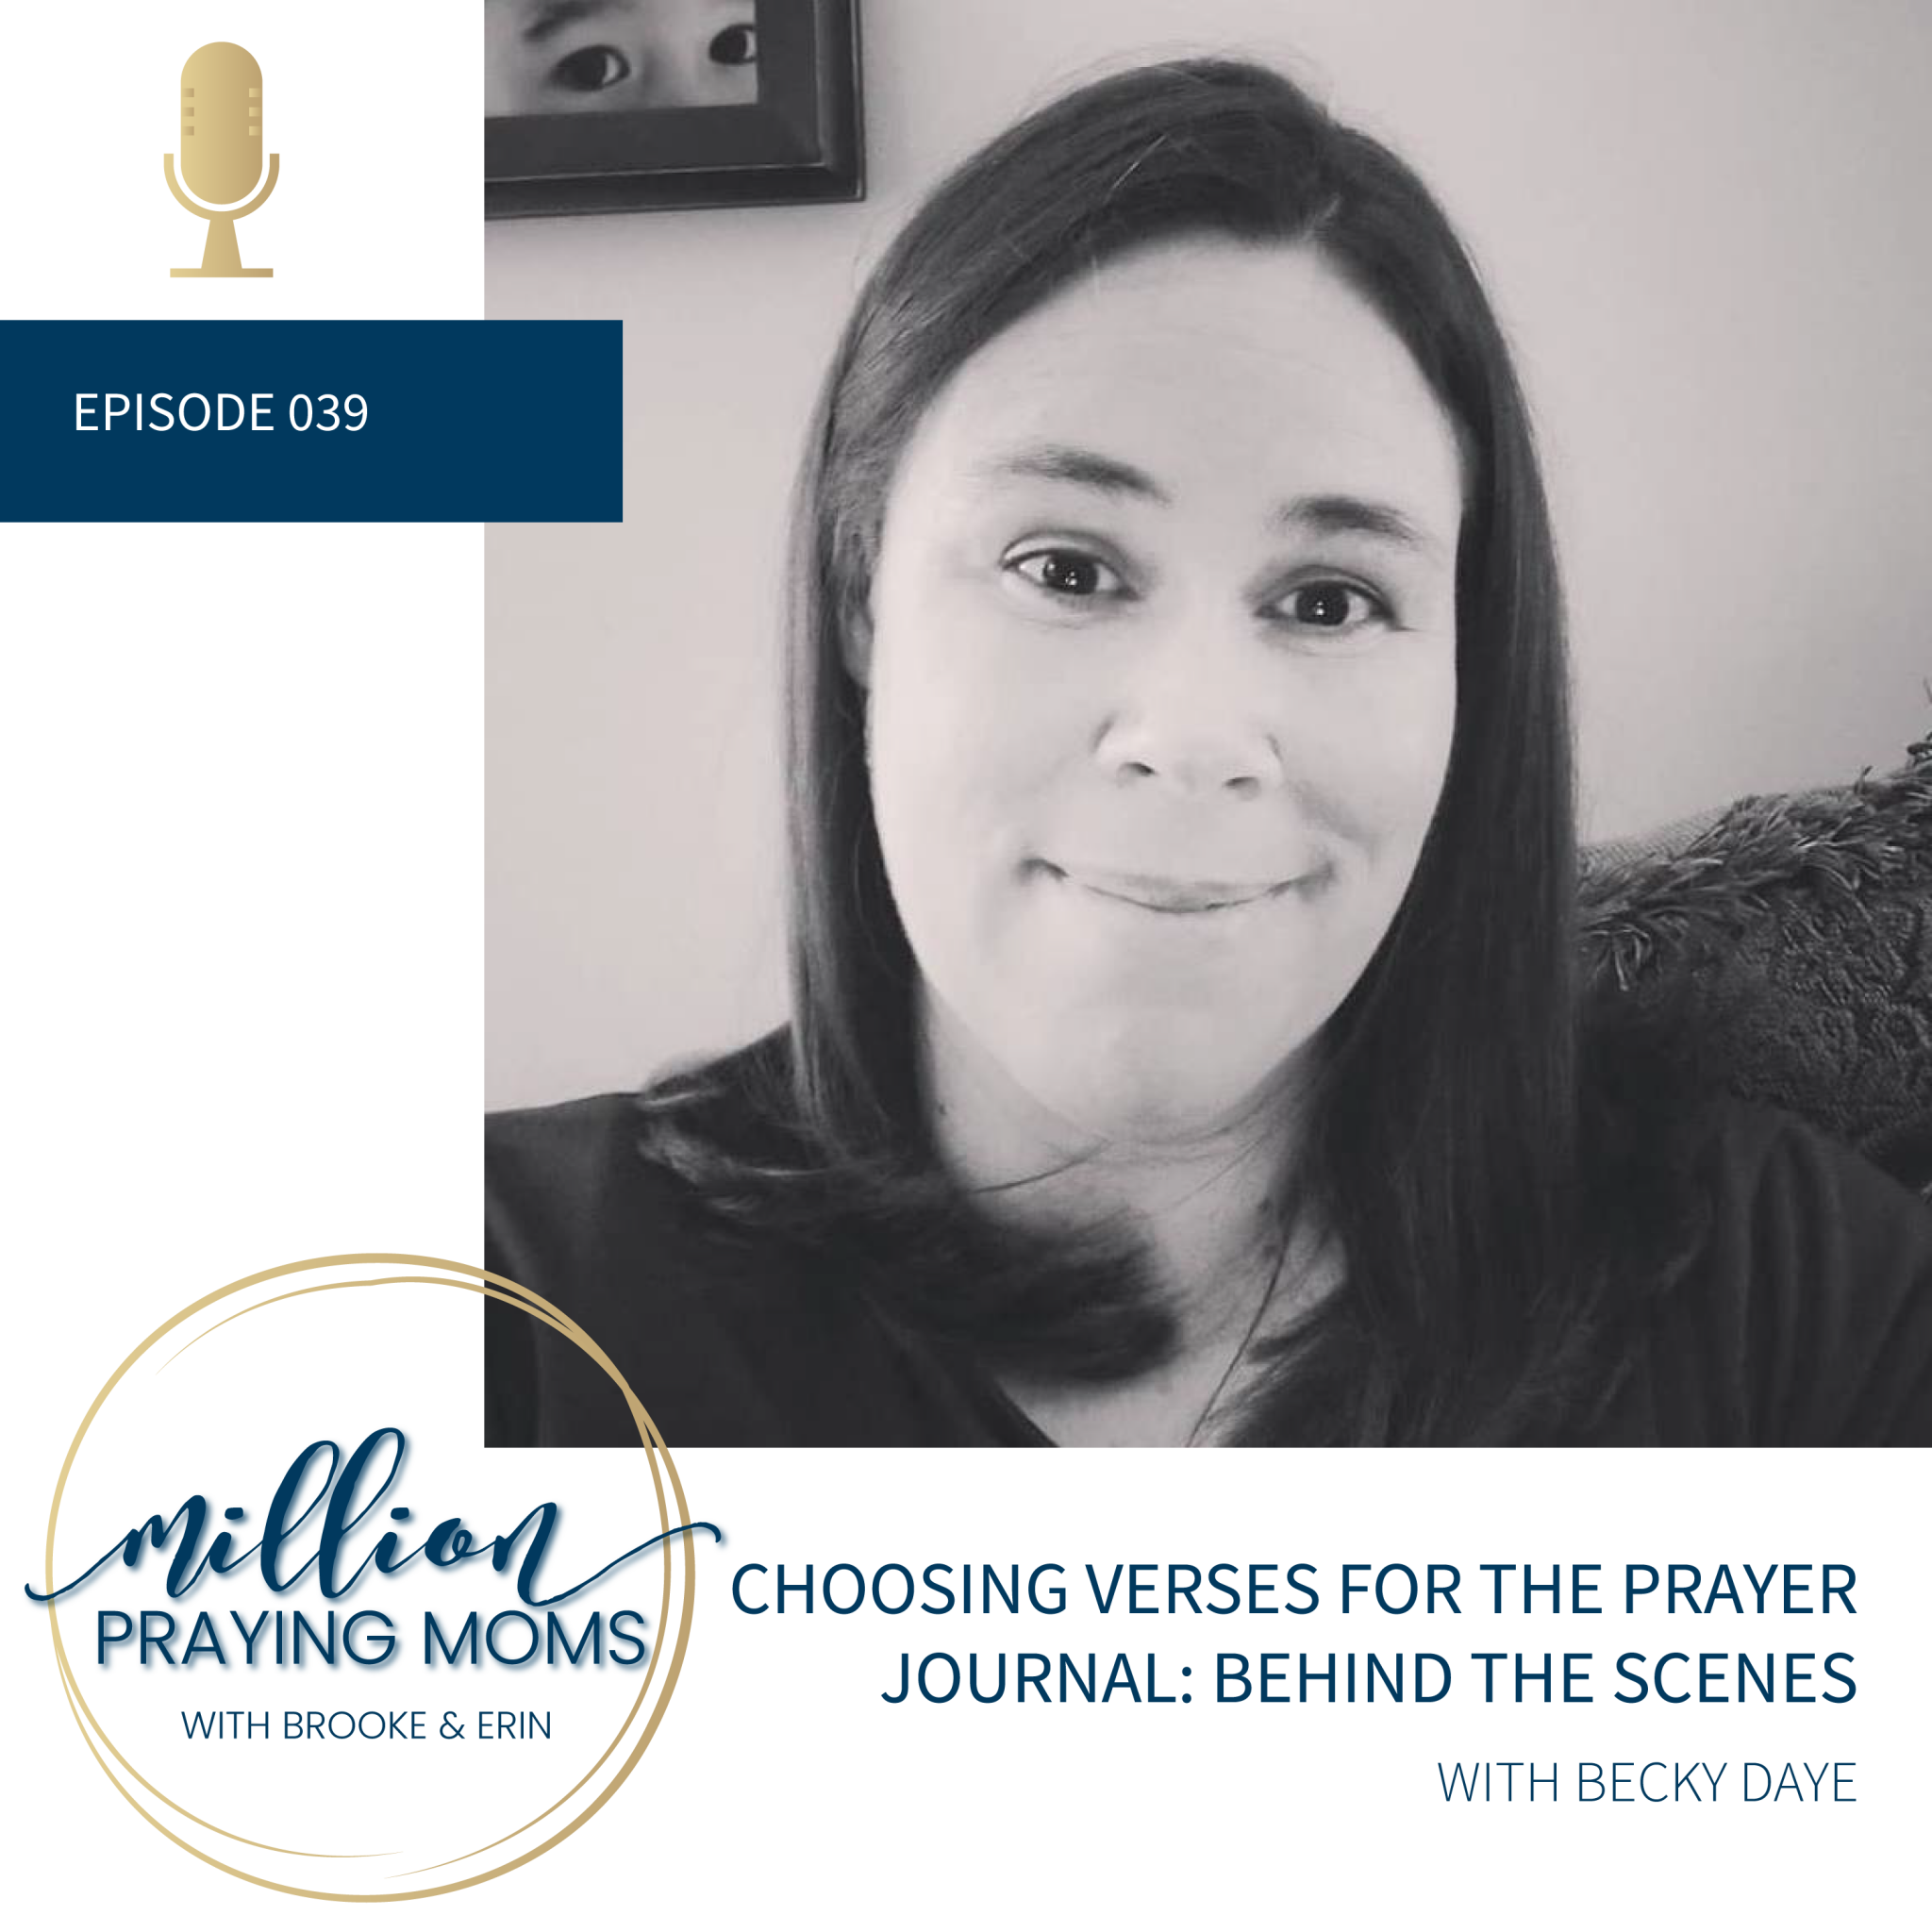 #039: A behind the scenes look at how we choose verses for the prayer journal